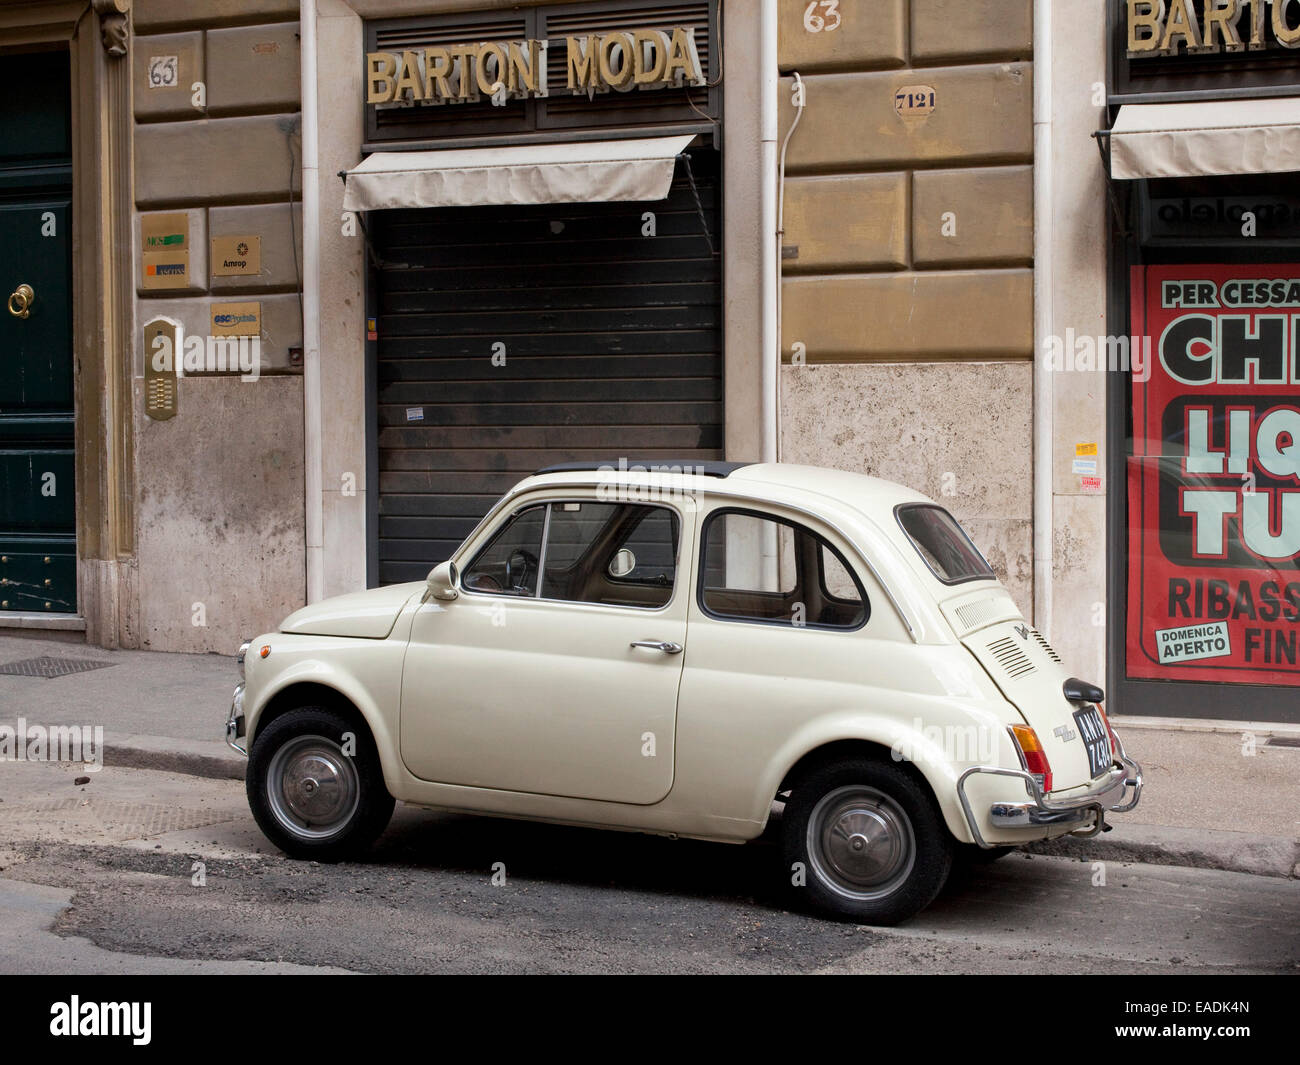 Old Fiat, Rome, Italy - Stock Image